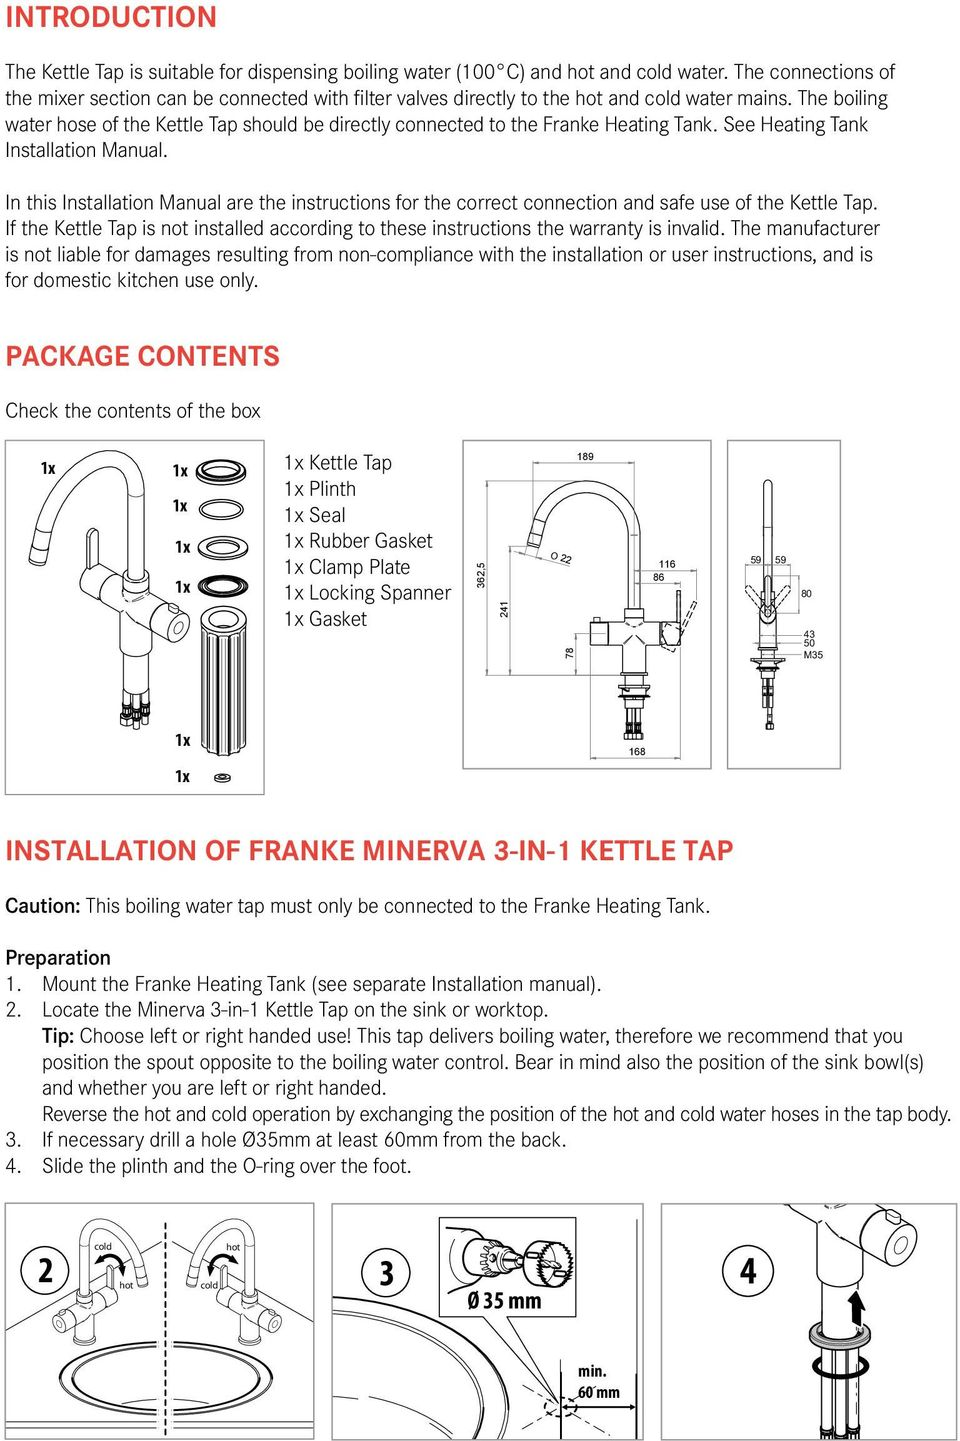 The boiling water hose of the Kettle Tap should be directly connected to the Franke Heating Tank. See Heating Tank Installation Manual.